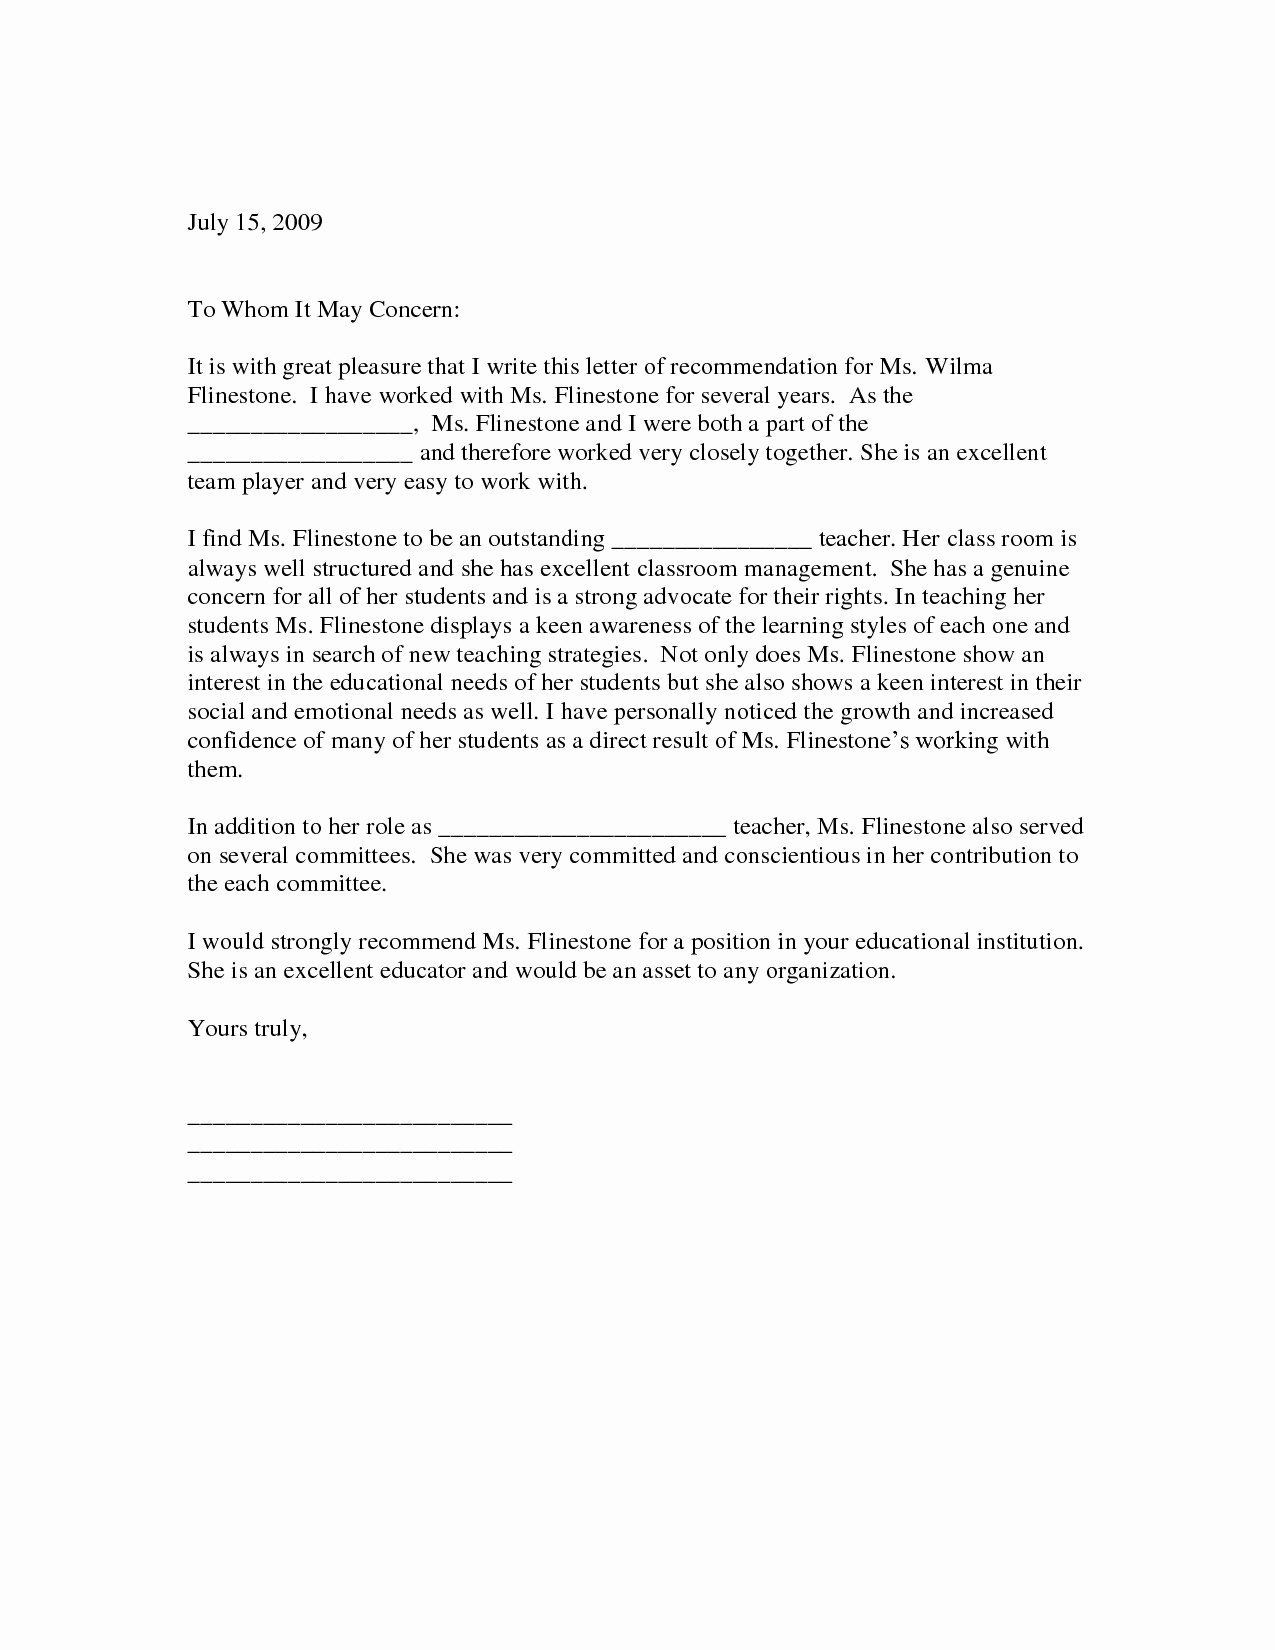 Reference Letter for Teaching Lovely Sample Letter Of Re Mendation for Teacher